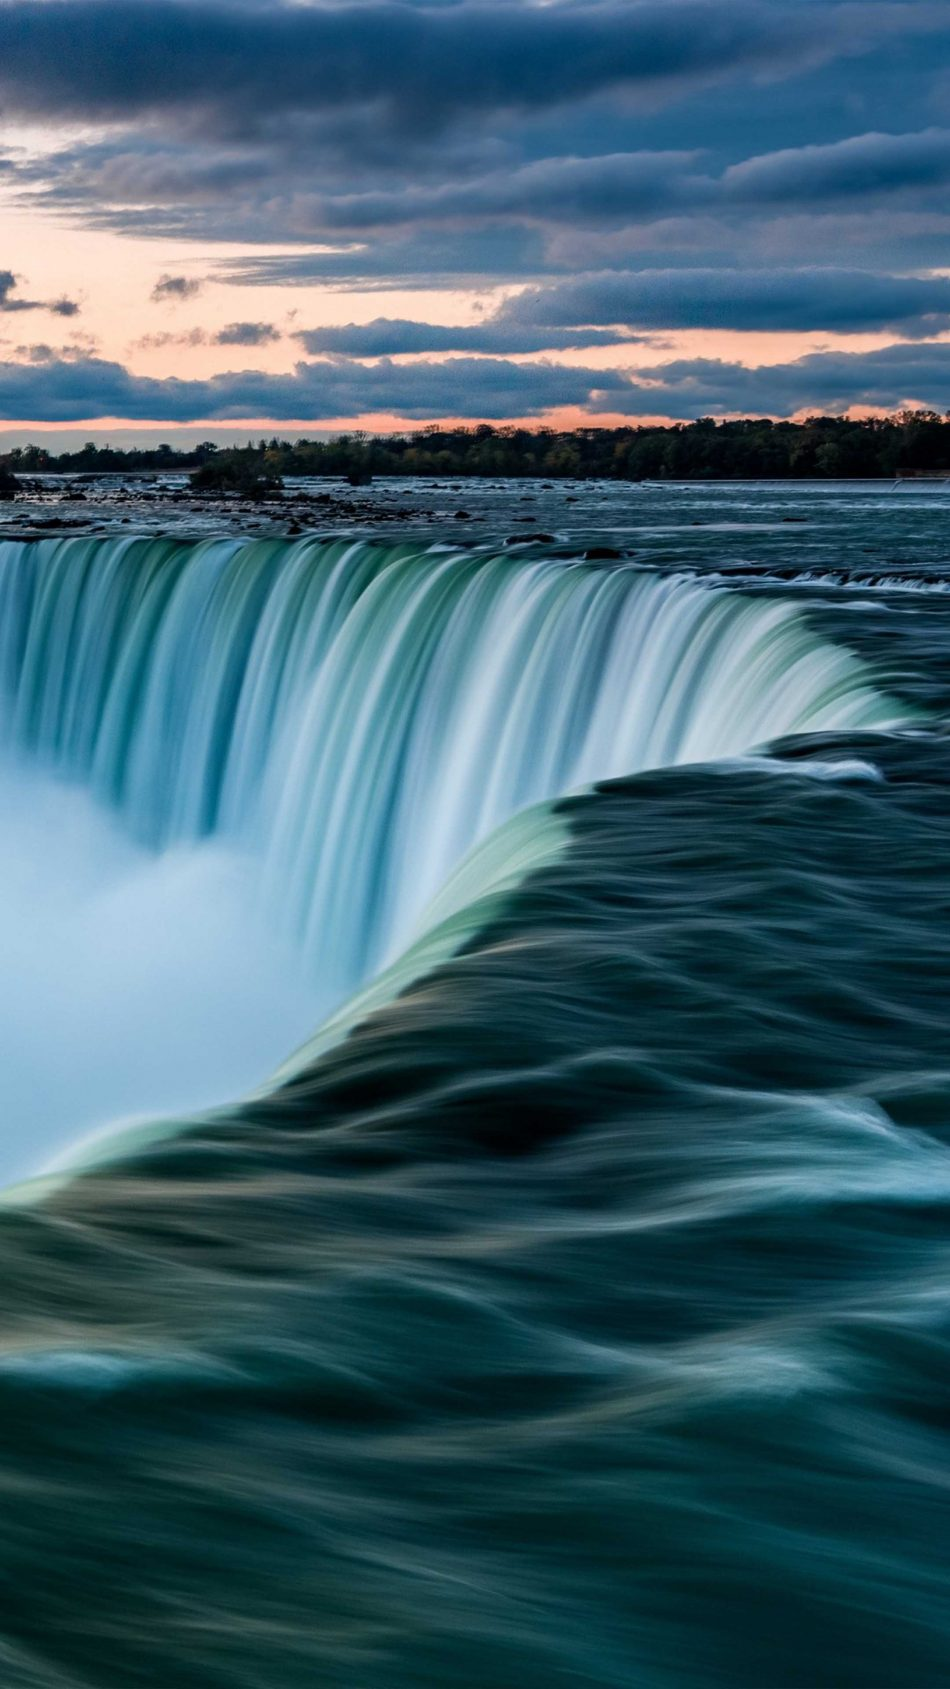 Niagara Falls Canada Free 4K Ultra HD Mobile Wallpaper